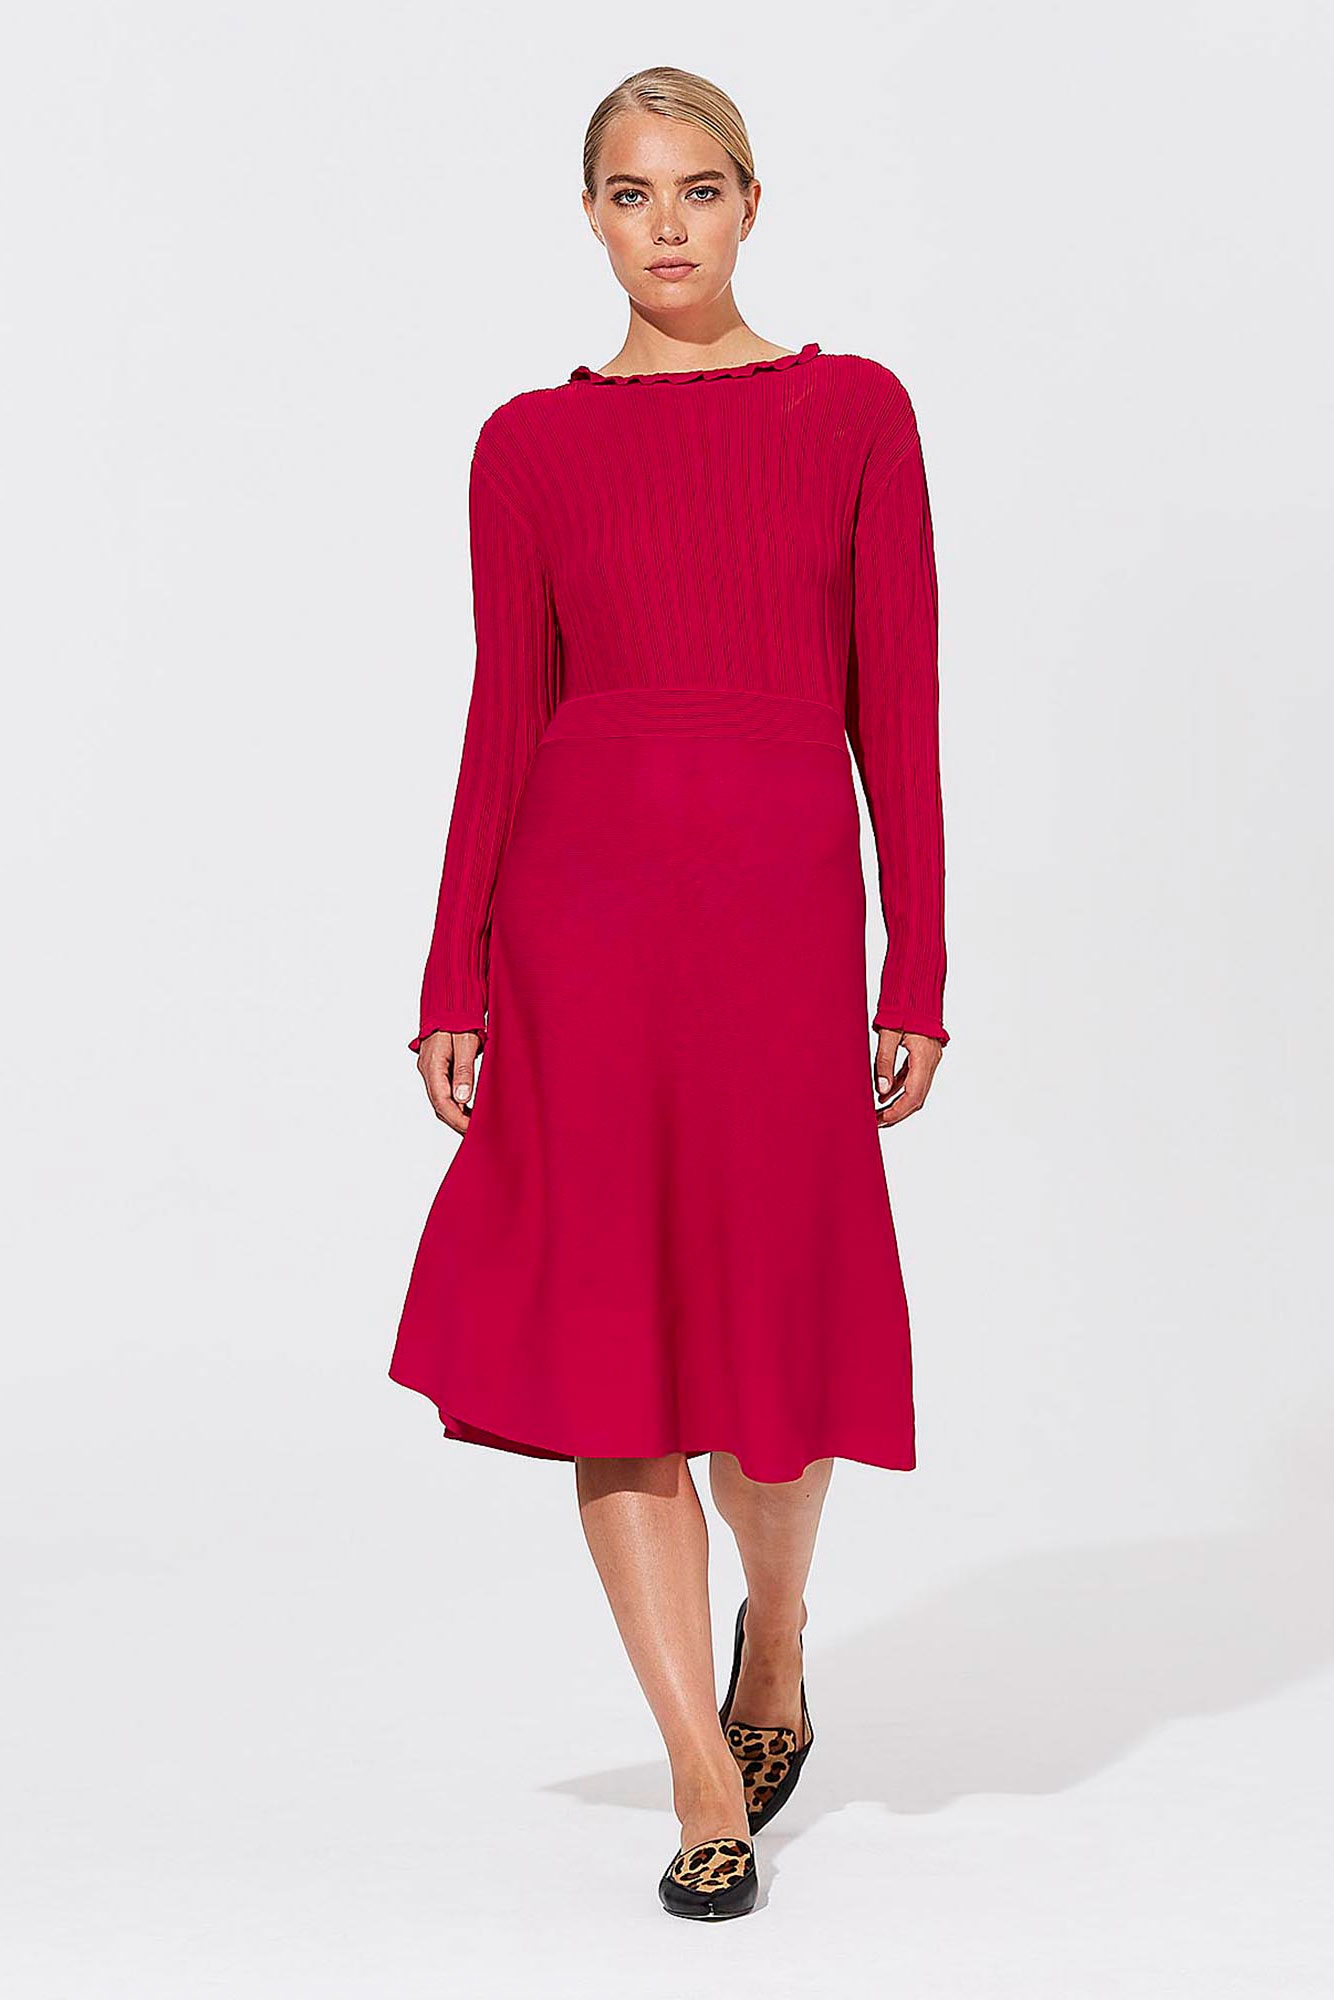 Karl Lagerfeld Paris Red Rib Knitted Dress